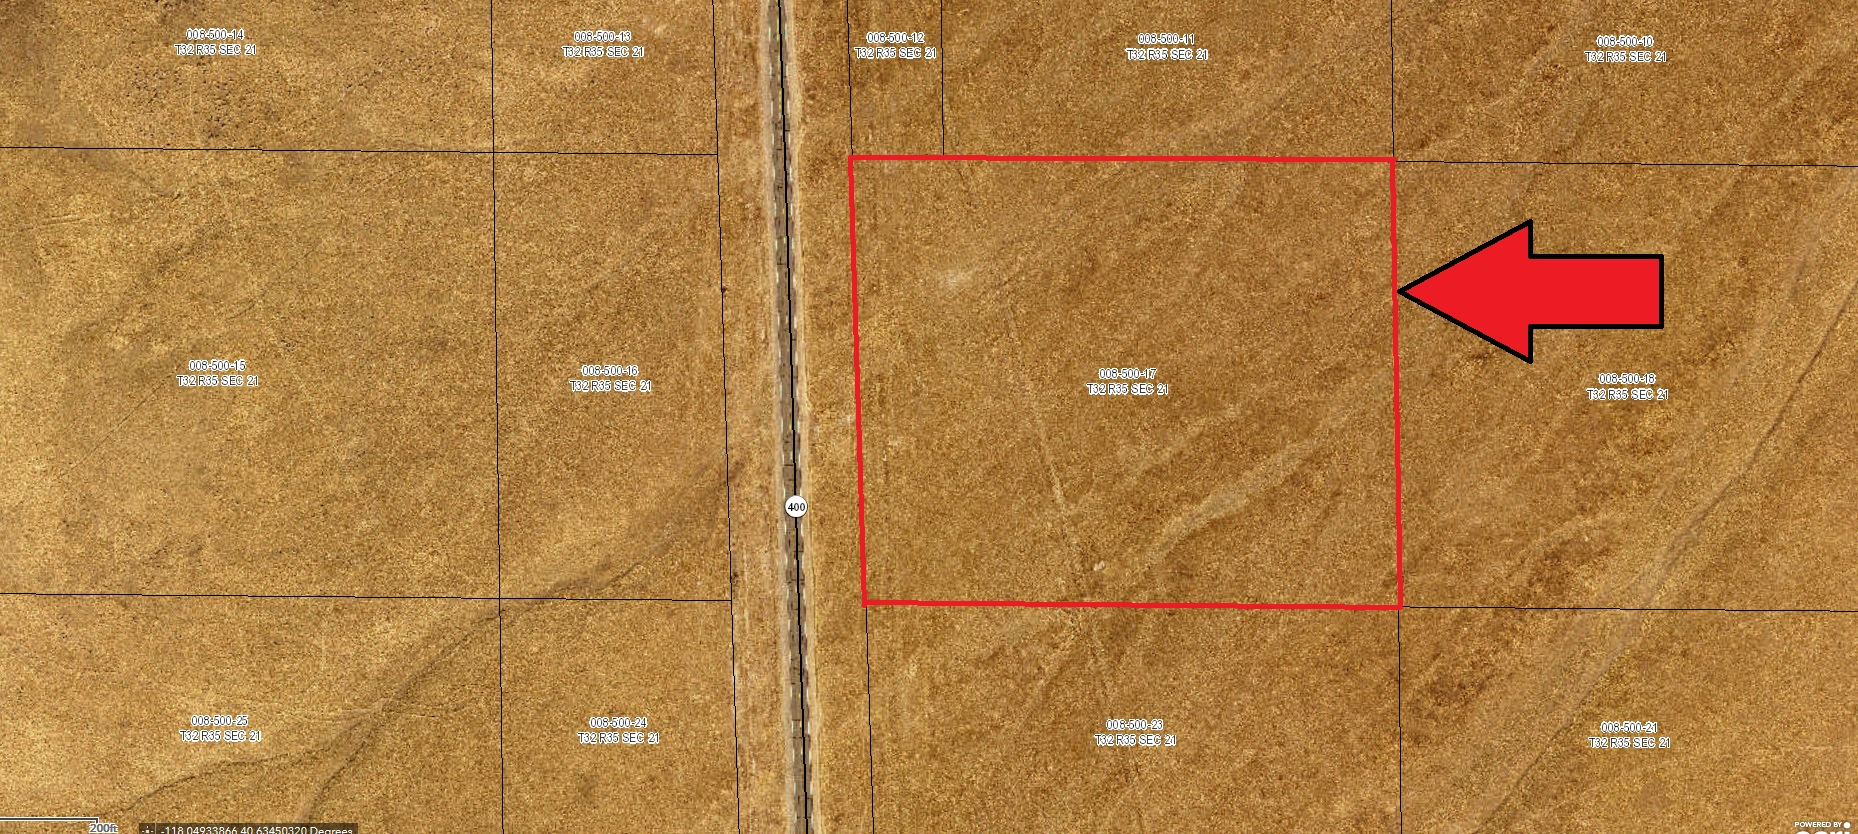 12.5 Acres on HWY 400 – Pershing County – Adjoining Property Also Available